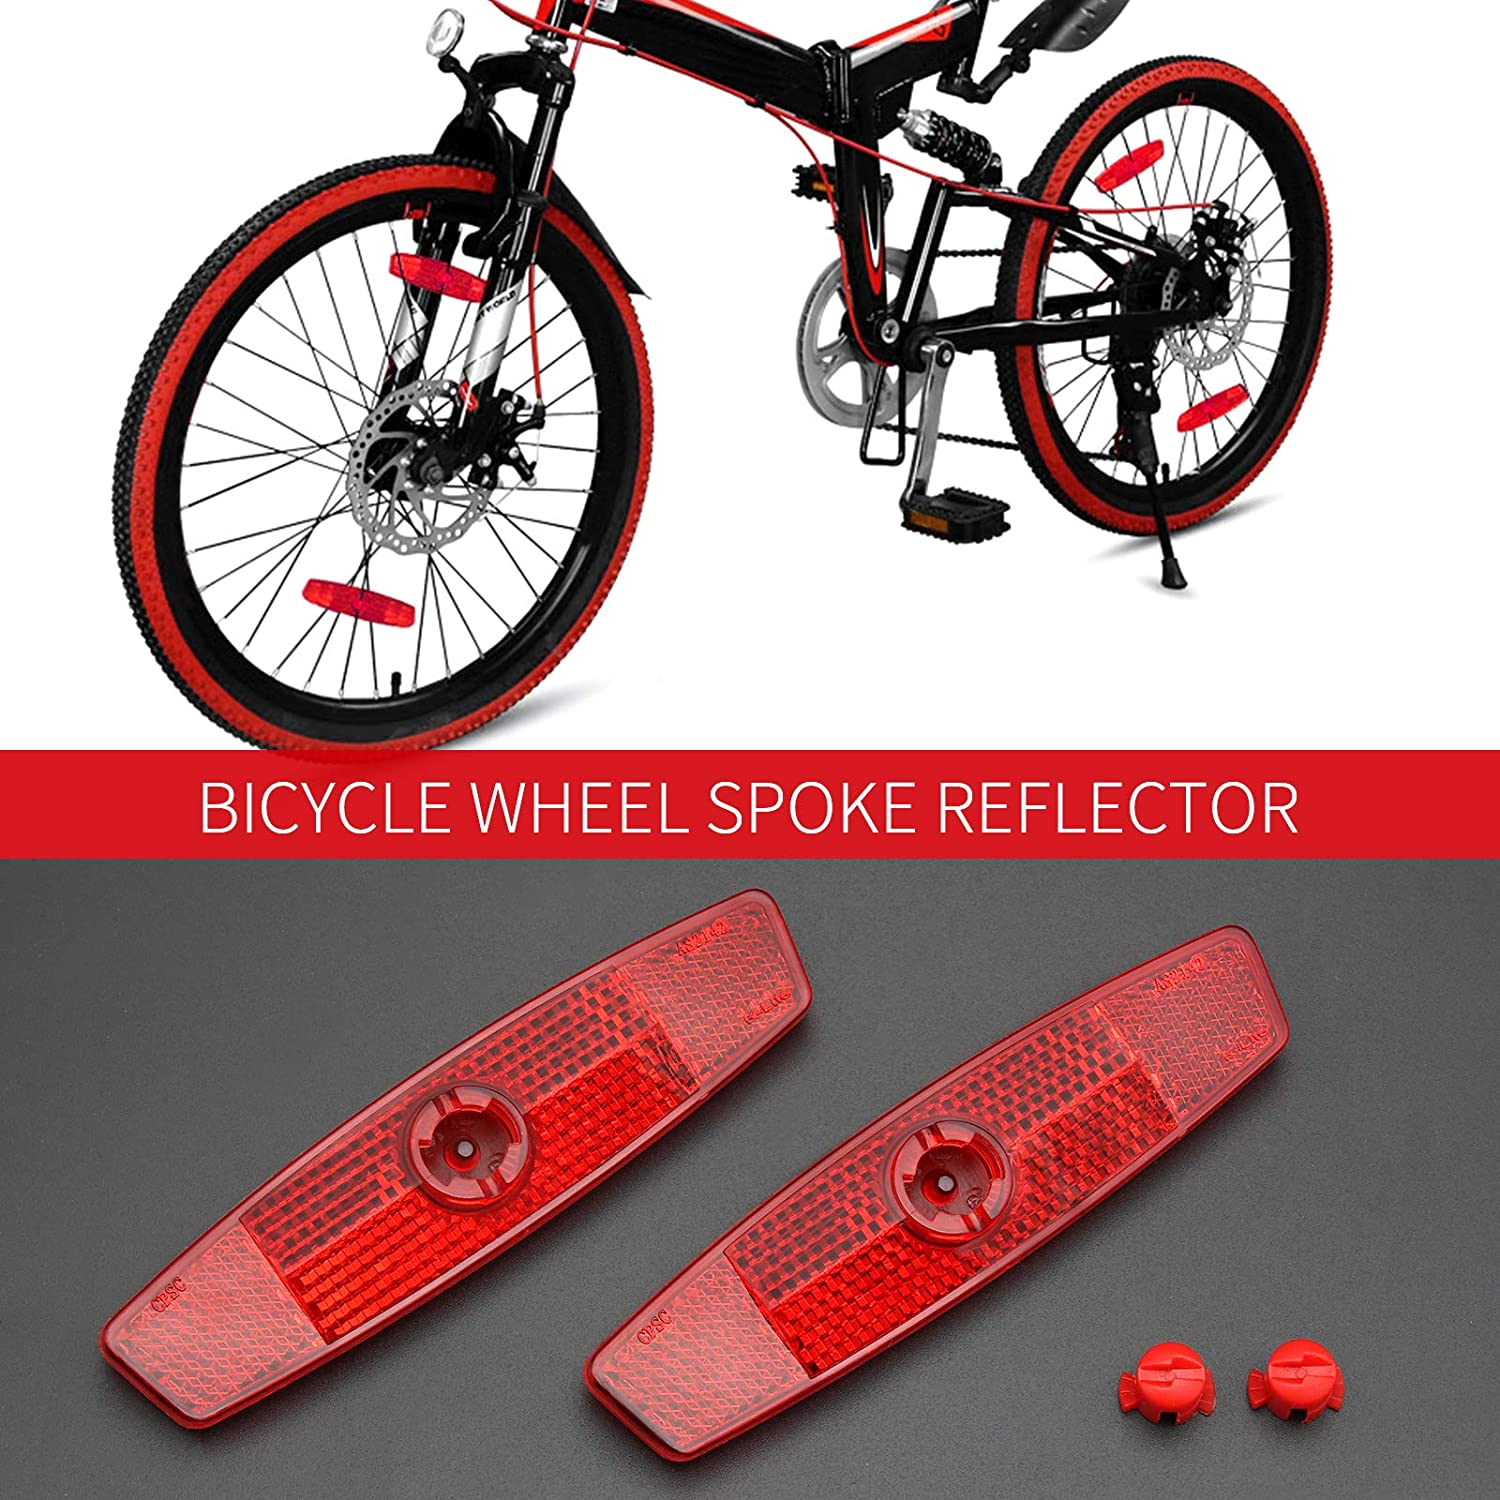 Bicycle Bicycle Reflector Too l Suitable For Motorcycles Accessory Night Red